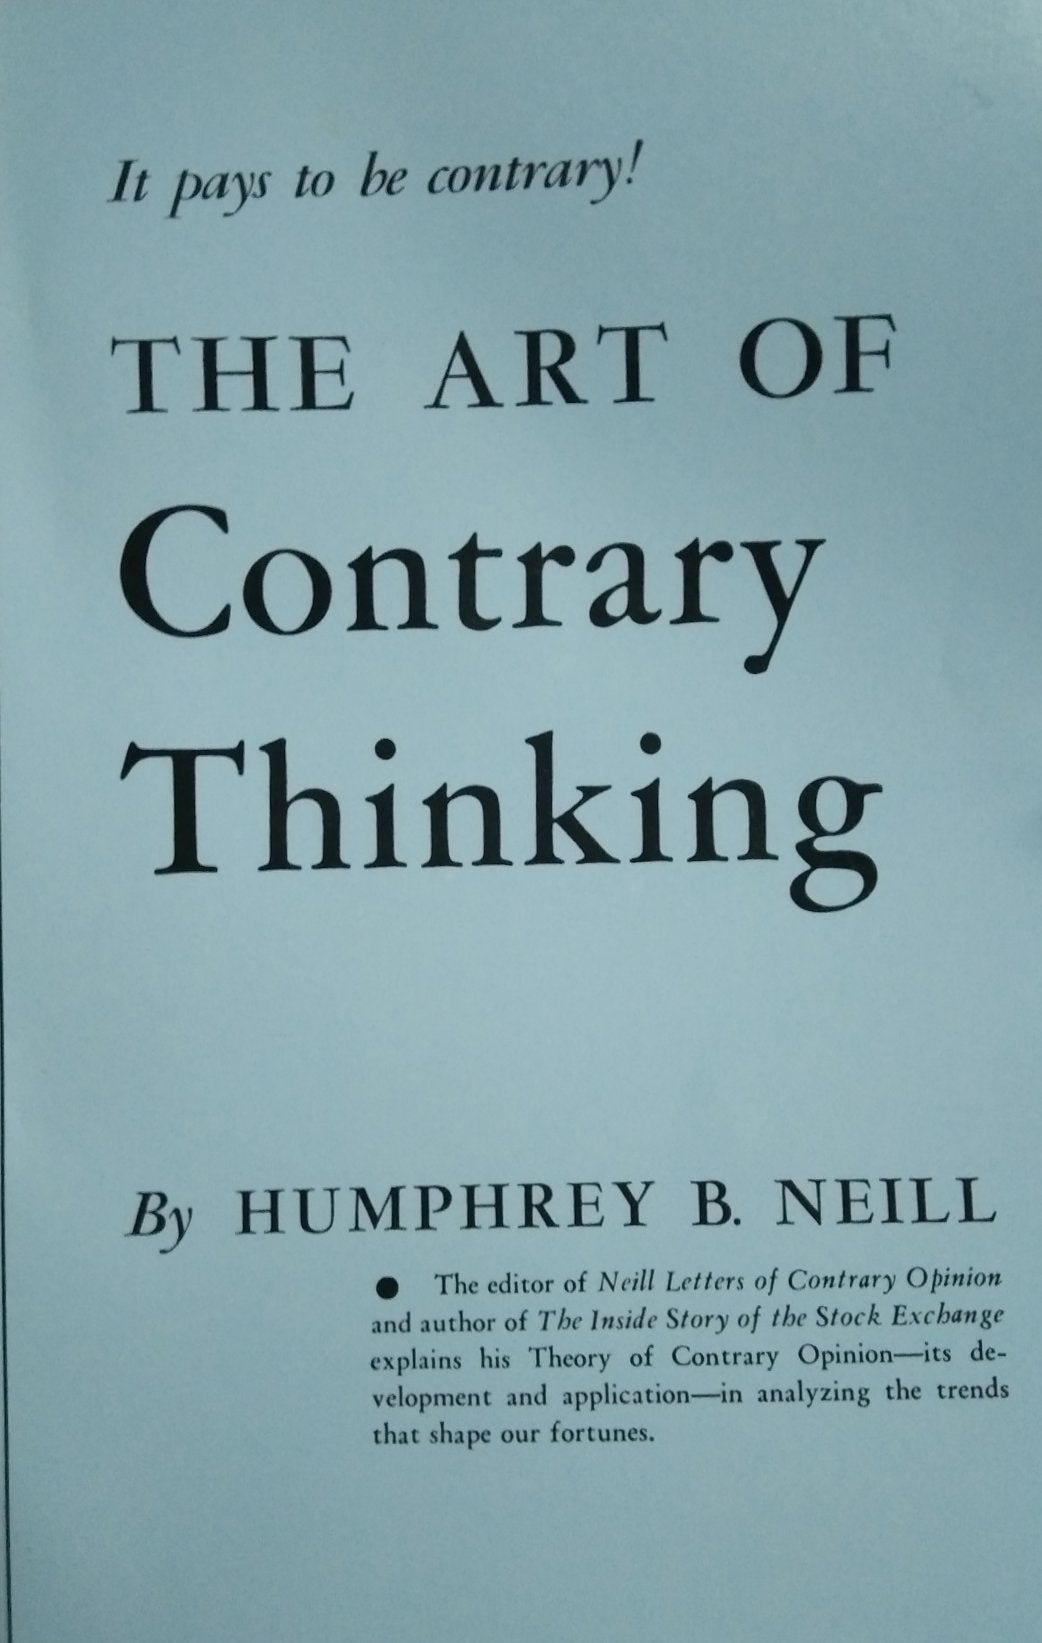 The art of contrary thinking by humphry neill